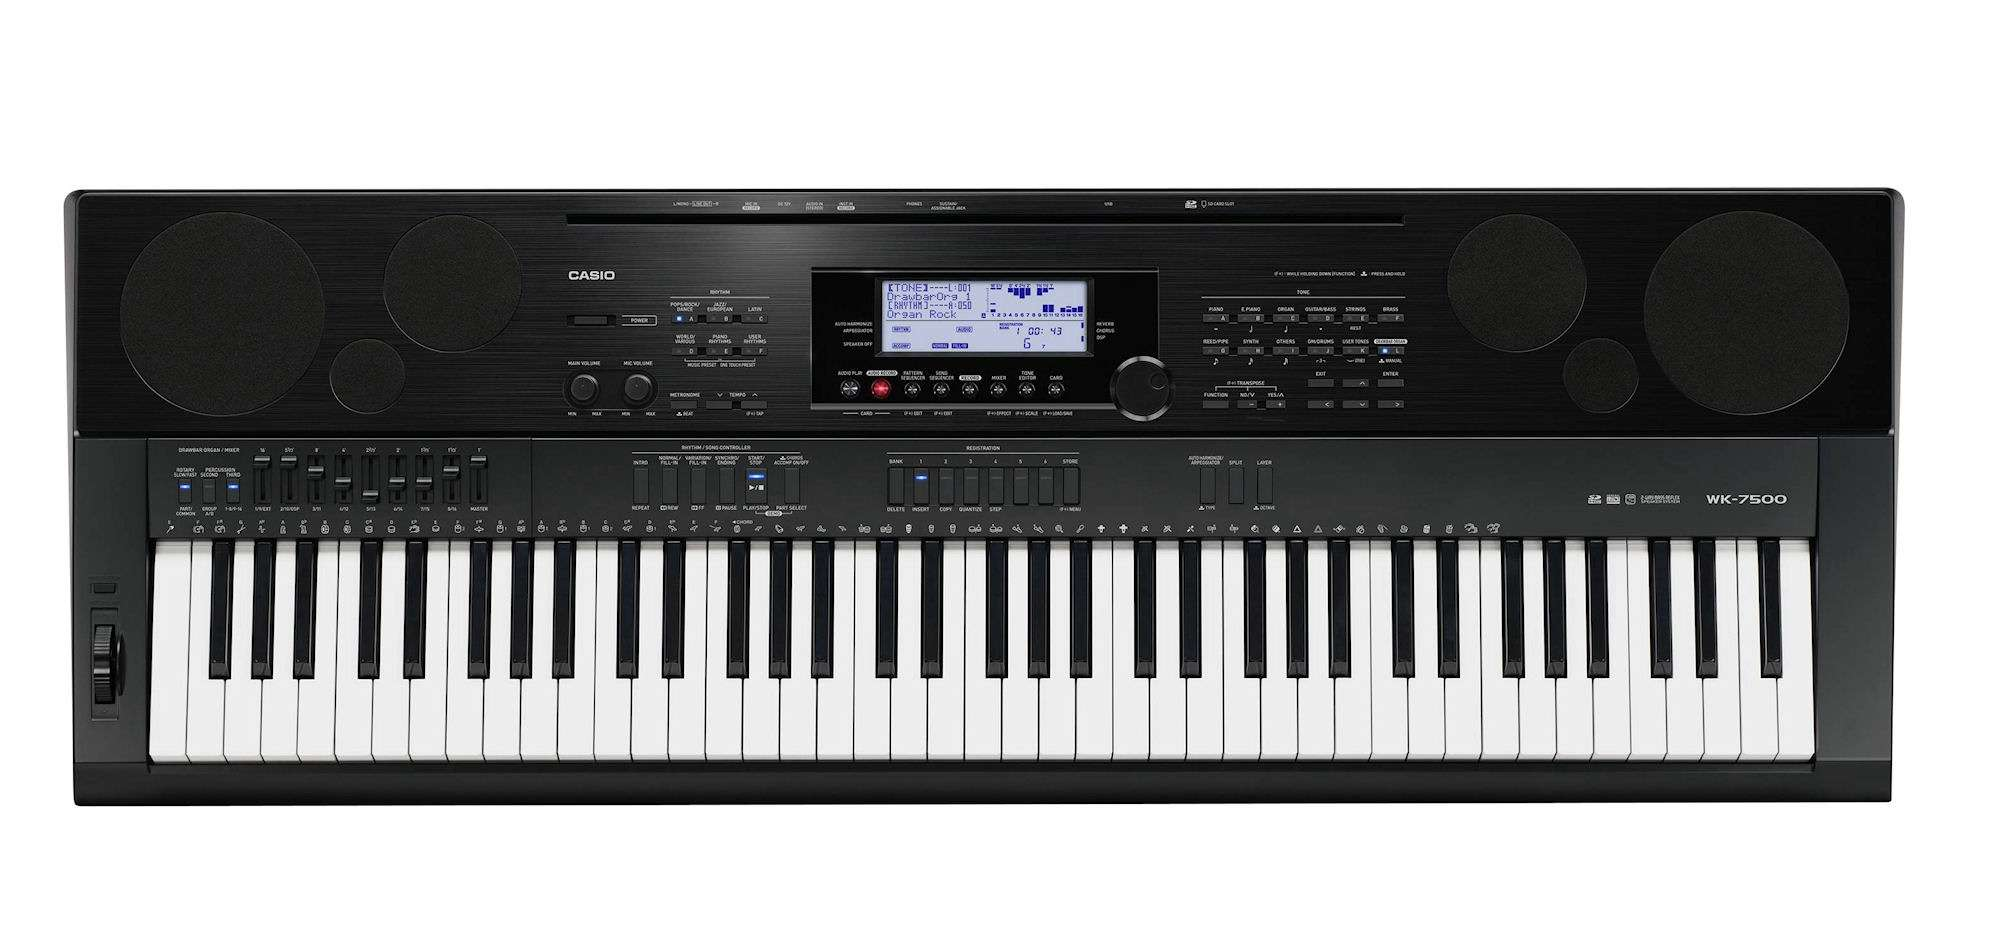 https://www.danorgan.com.vn/upload/images_products/large/Dan-organ-casio-WK-7500.jpg